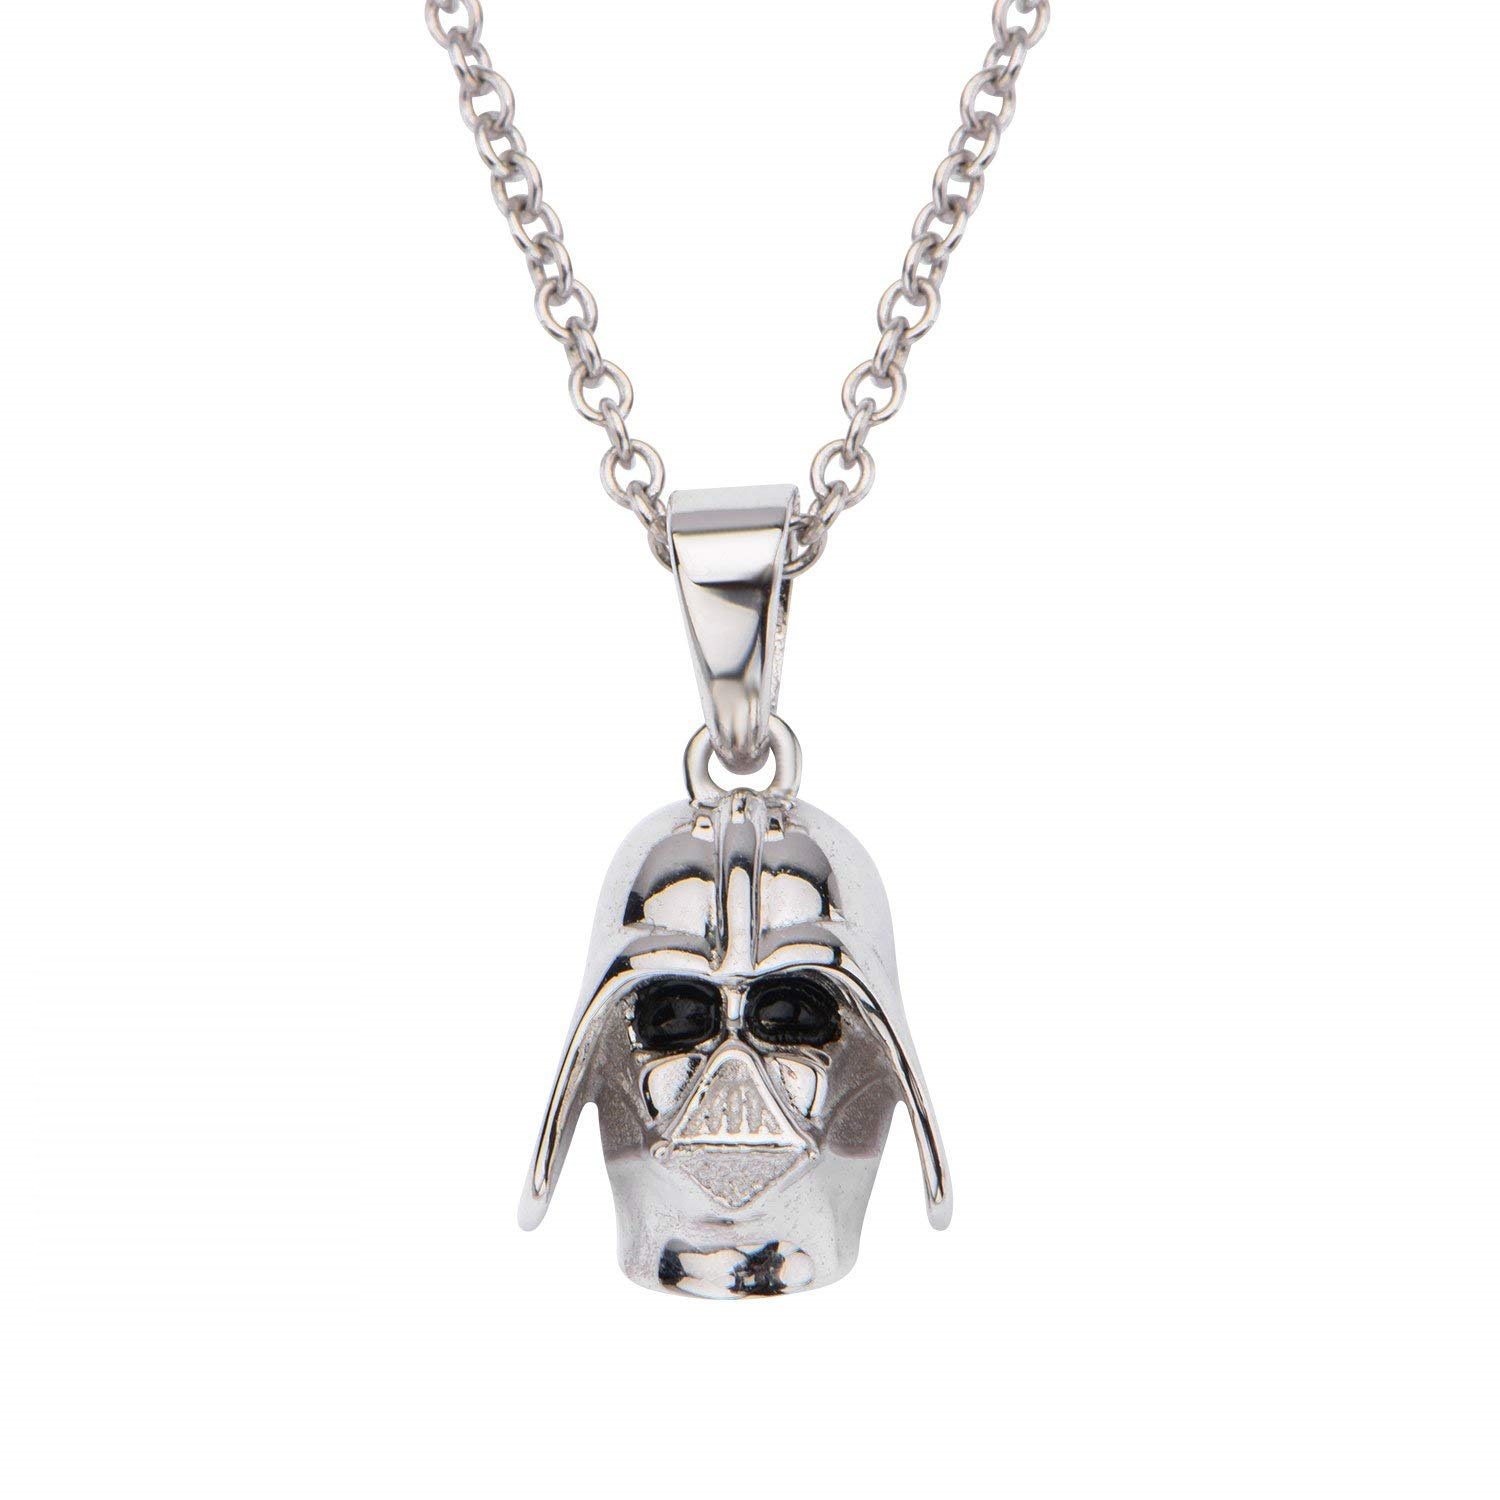 Body Vibe x Star Wars Darth Vader Sterling Silver Necklace on Amazon